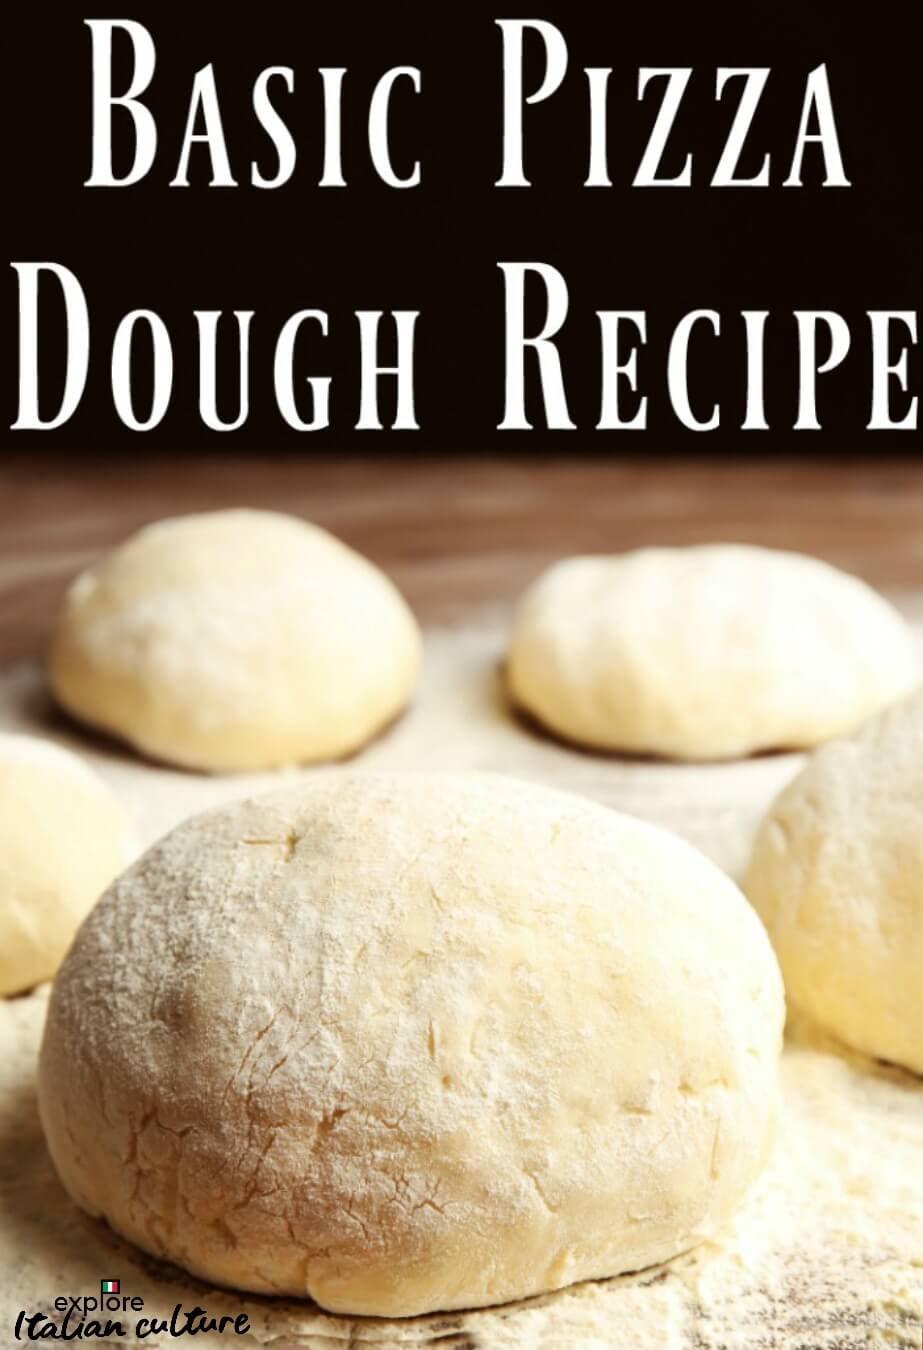 Make pizza dough - the Italian Way1